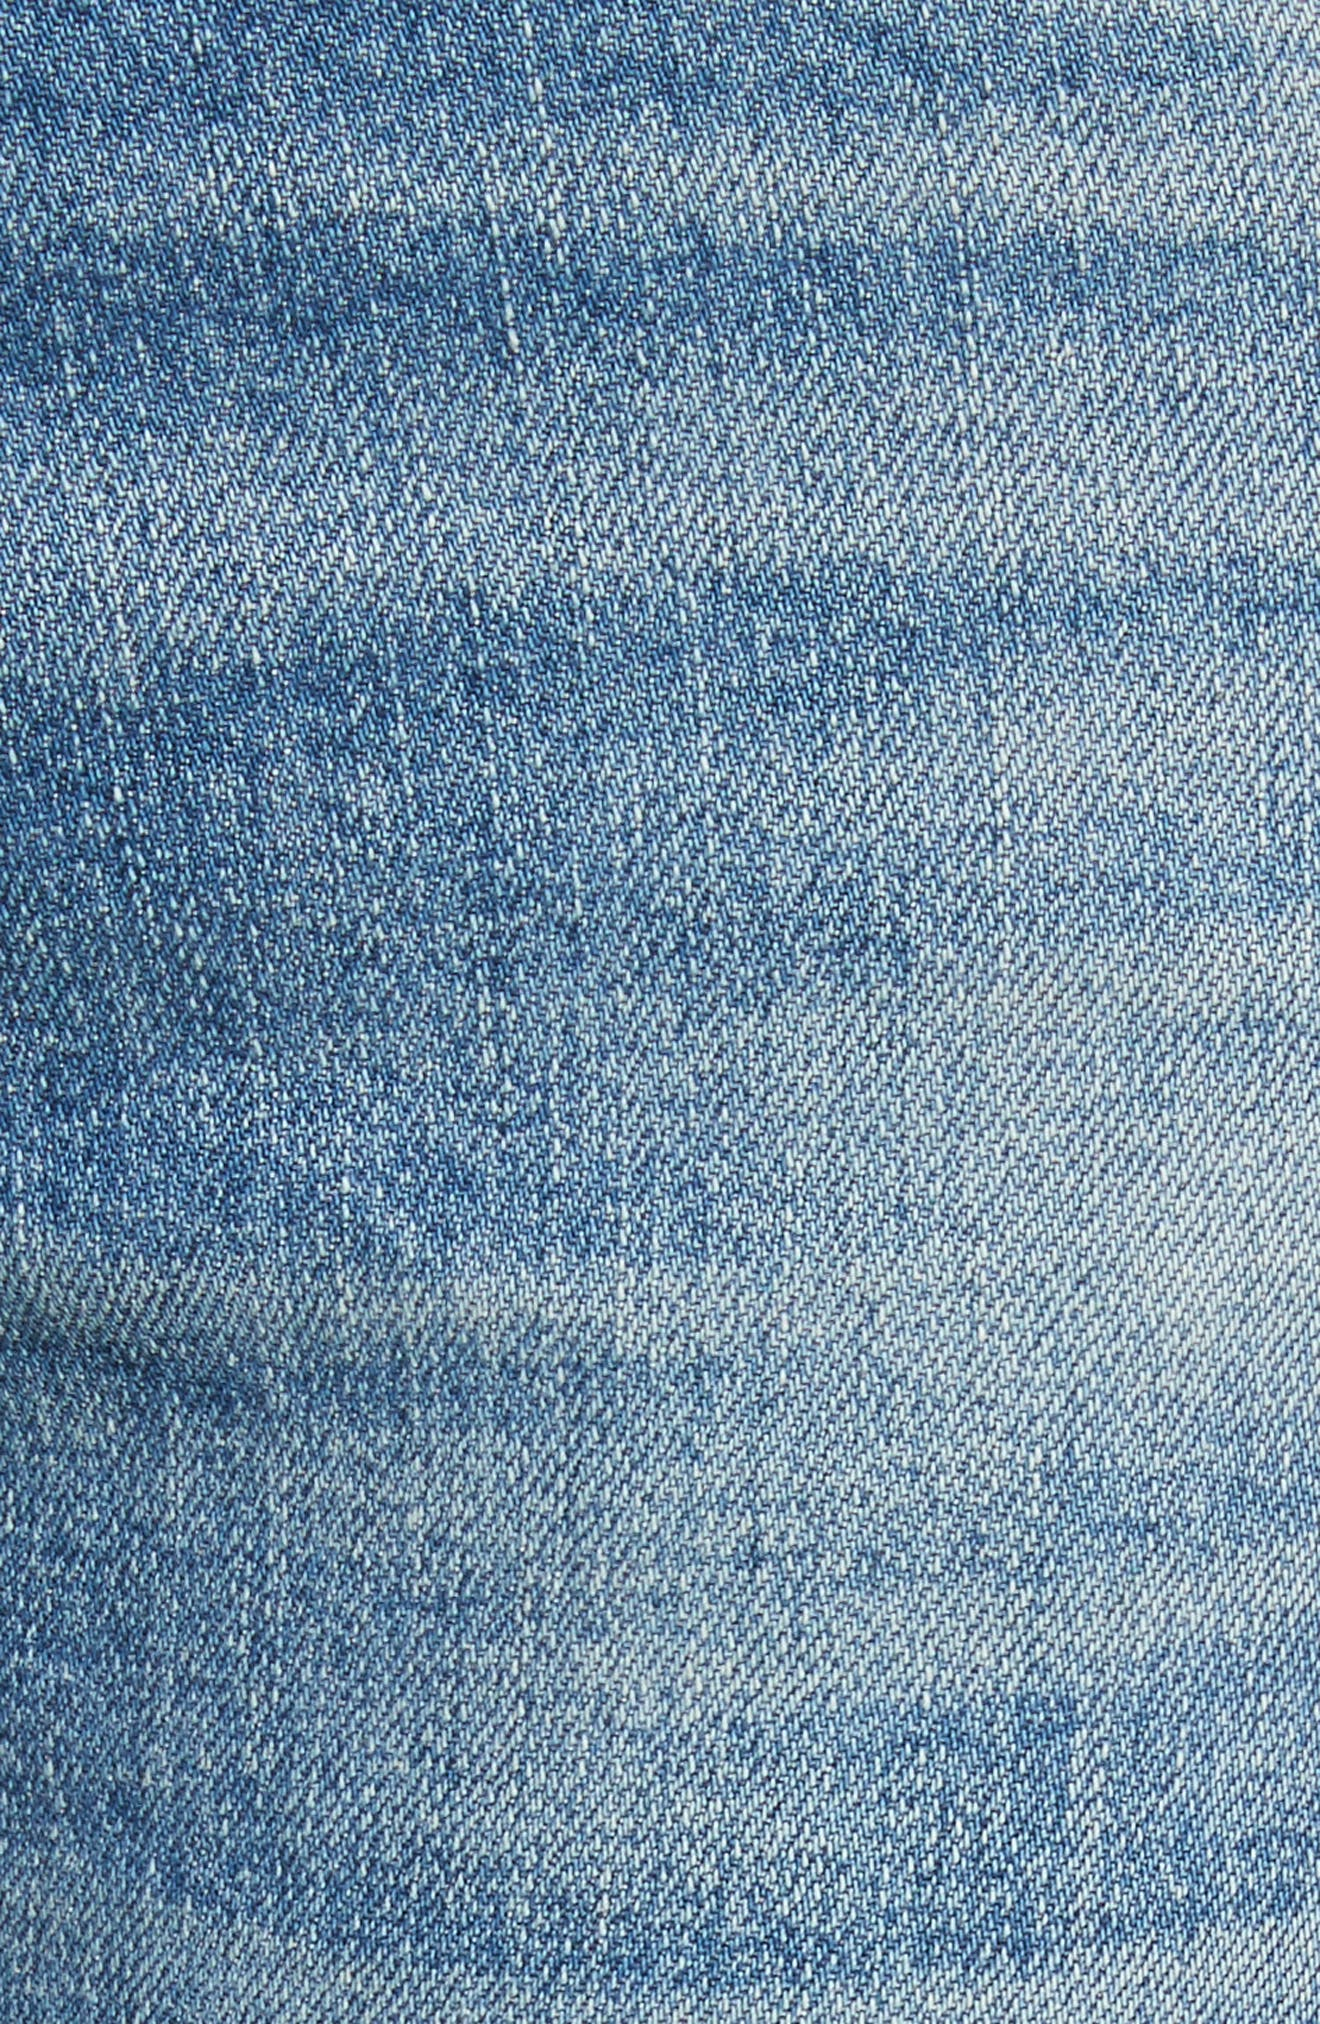 Ines Crop Girlfriend Jeans,                             Alternate thumbnail 6, color,                             Pipeline